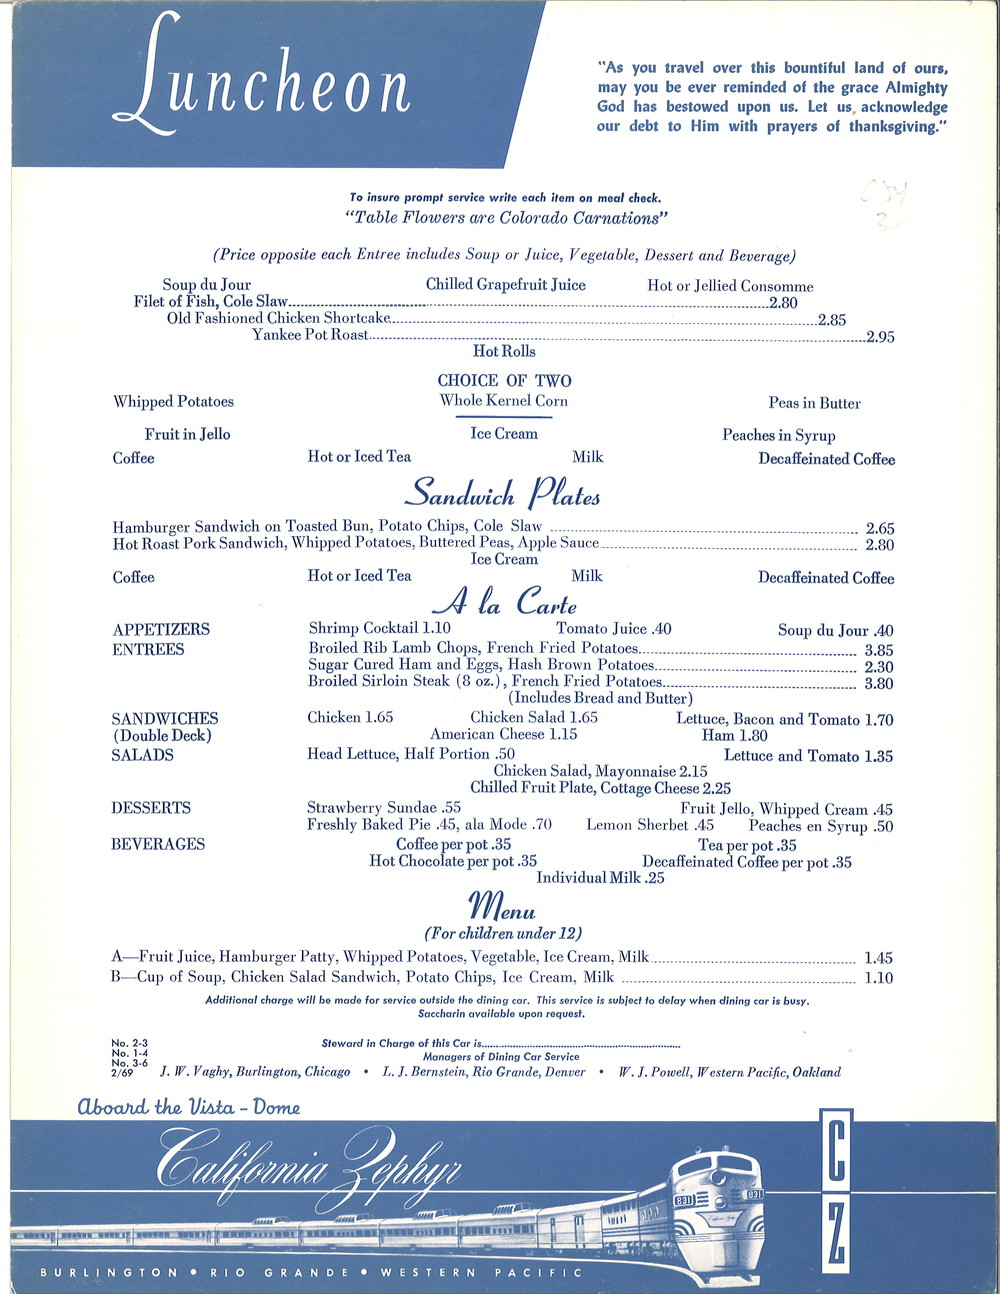 Burlington California Zephyr Lunch Menu 2-69 .jpg